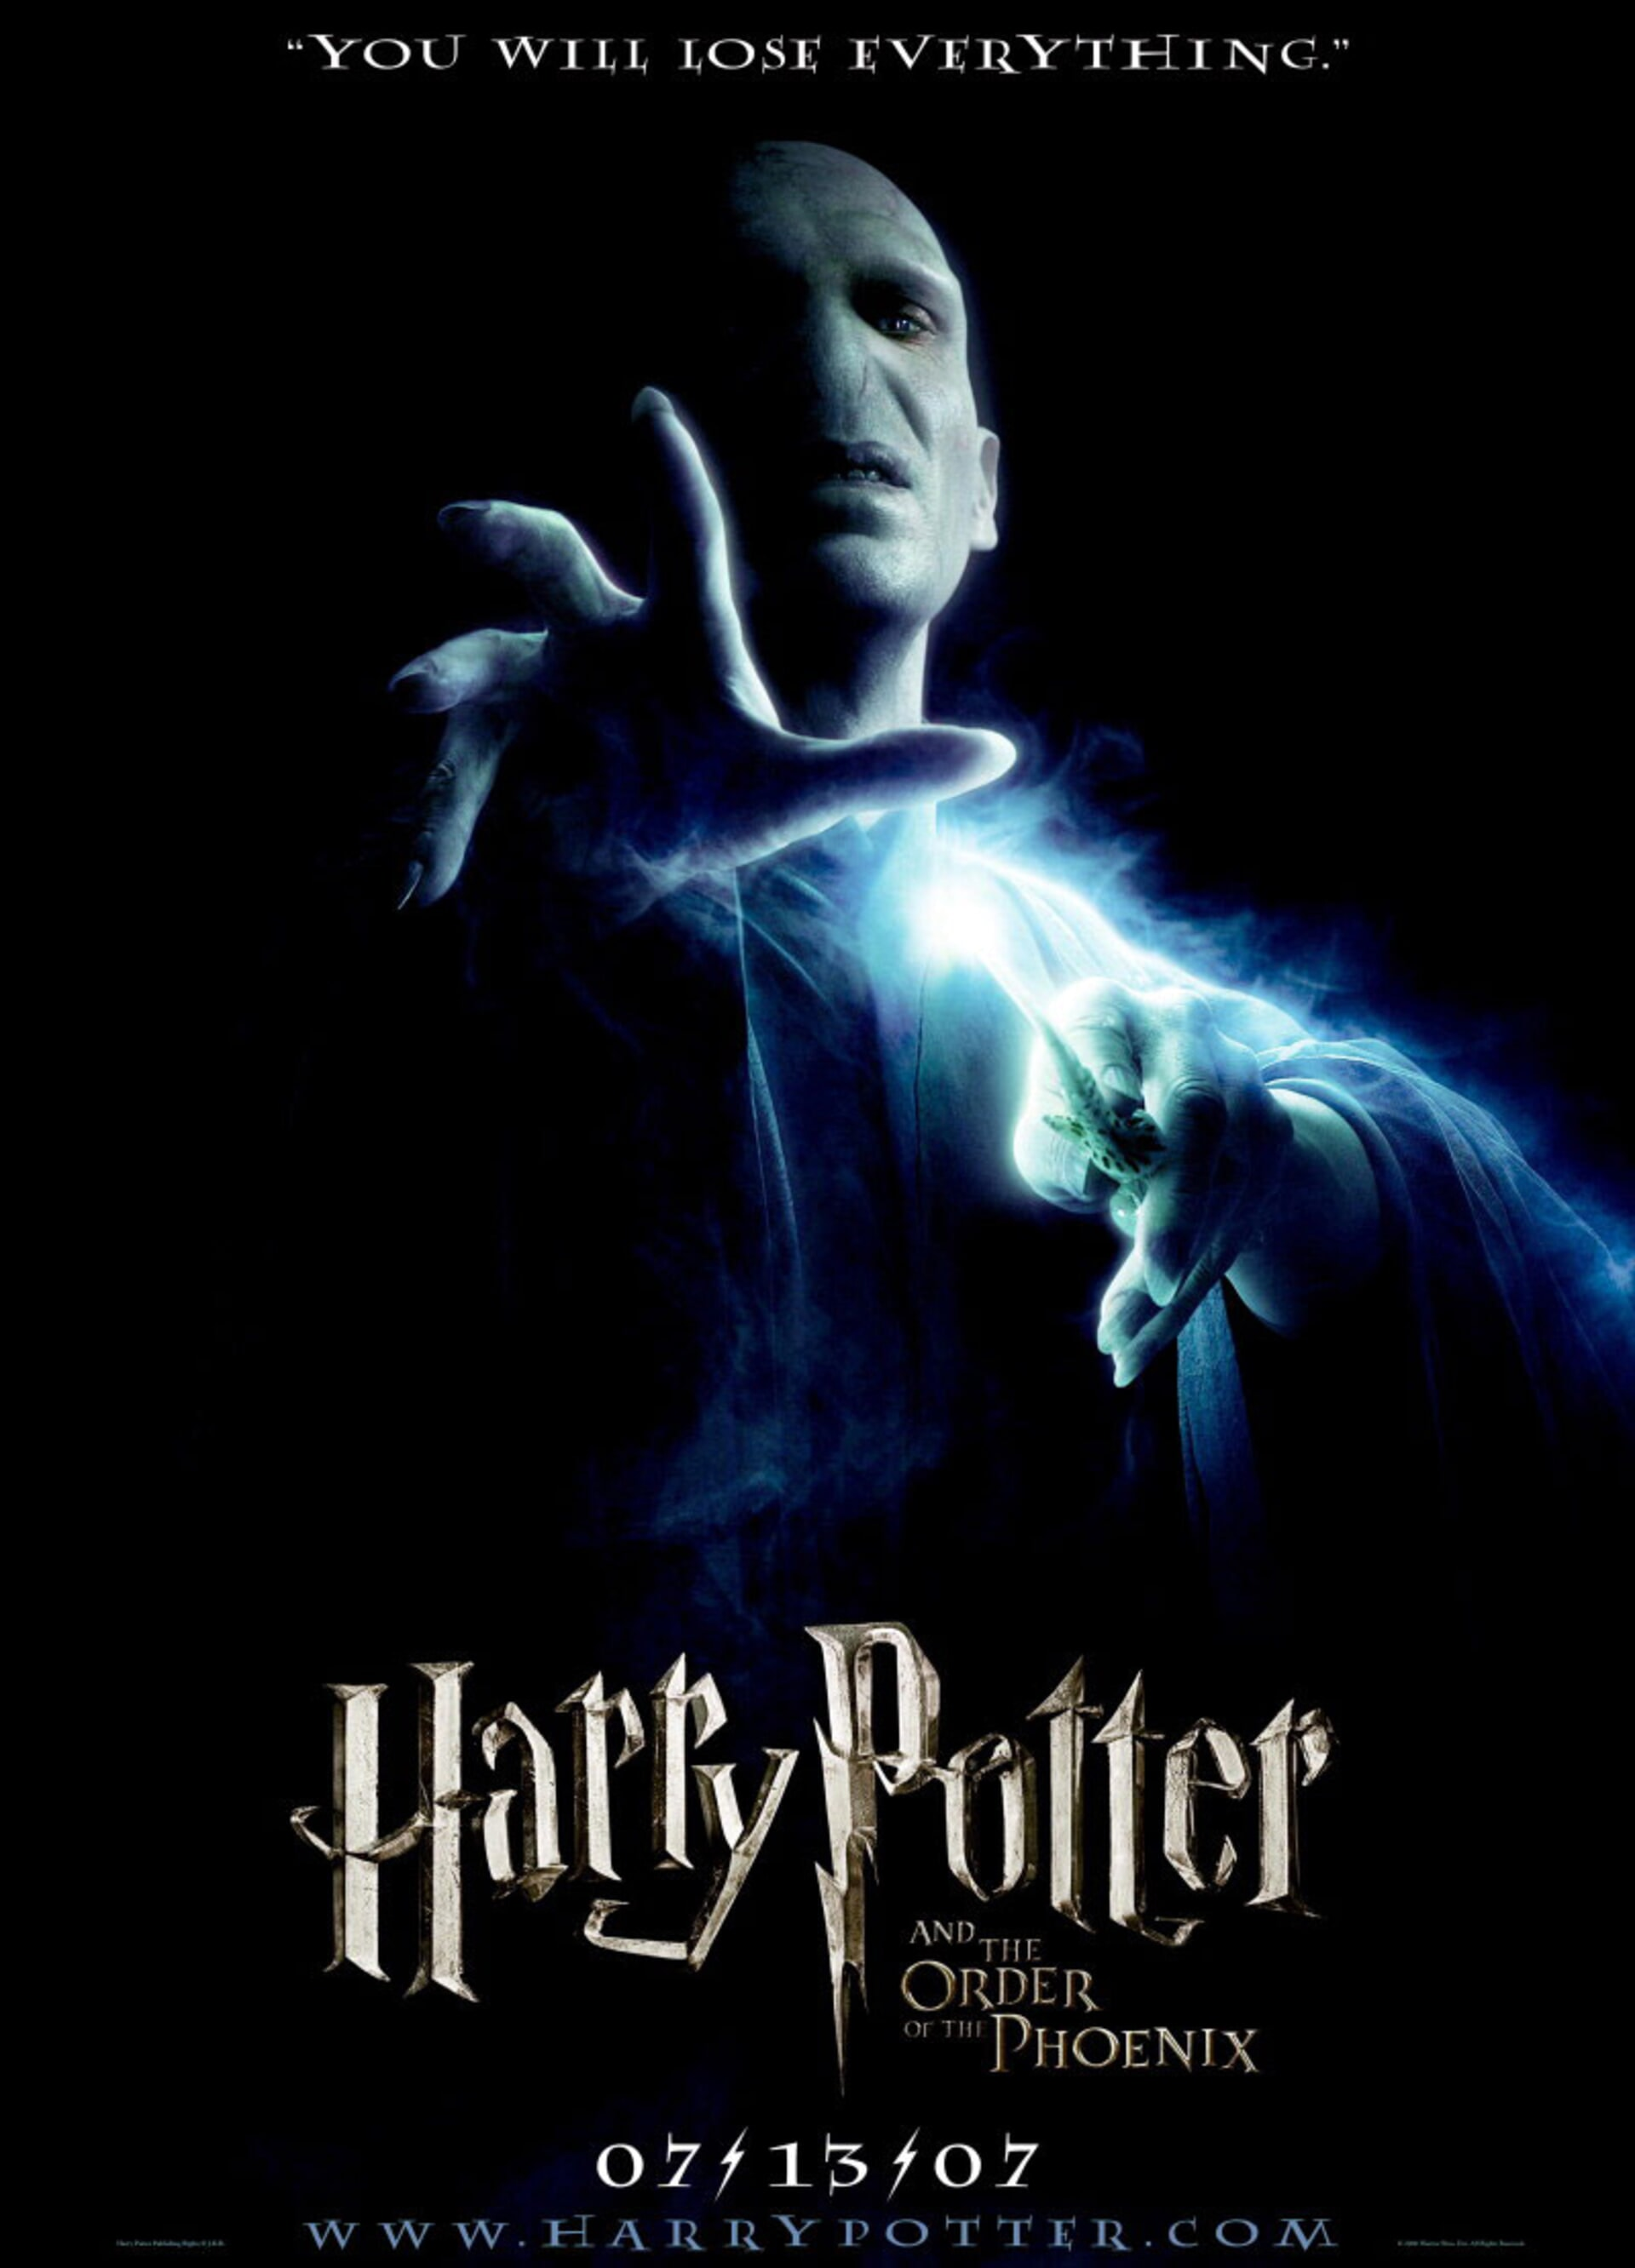 WarnerBros com | Harry Potter and the Order of the Phoenix | Movies